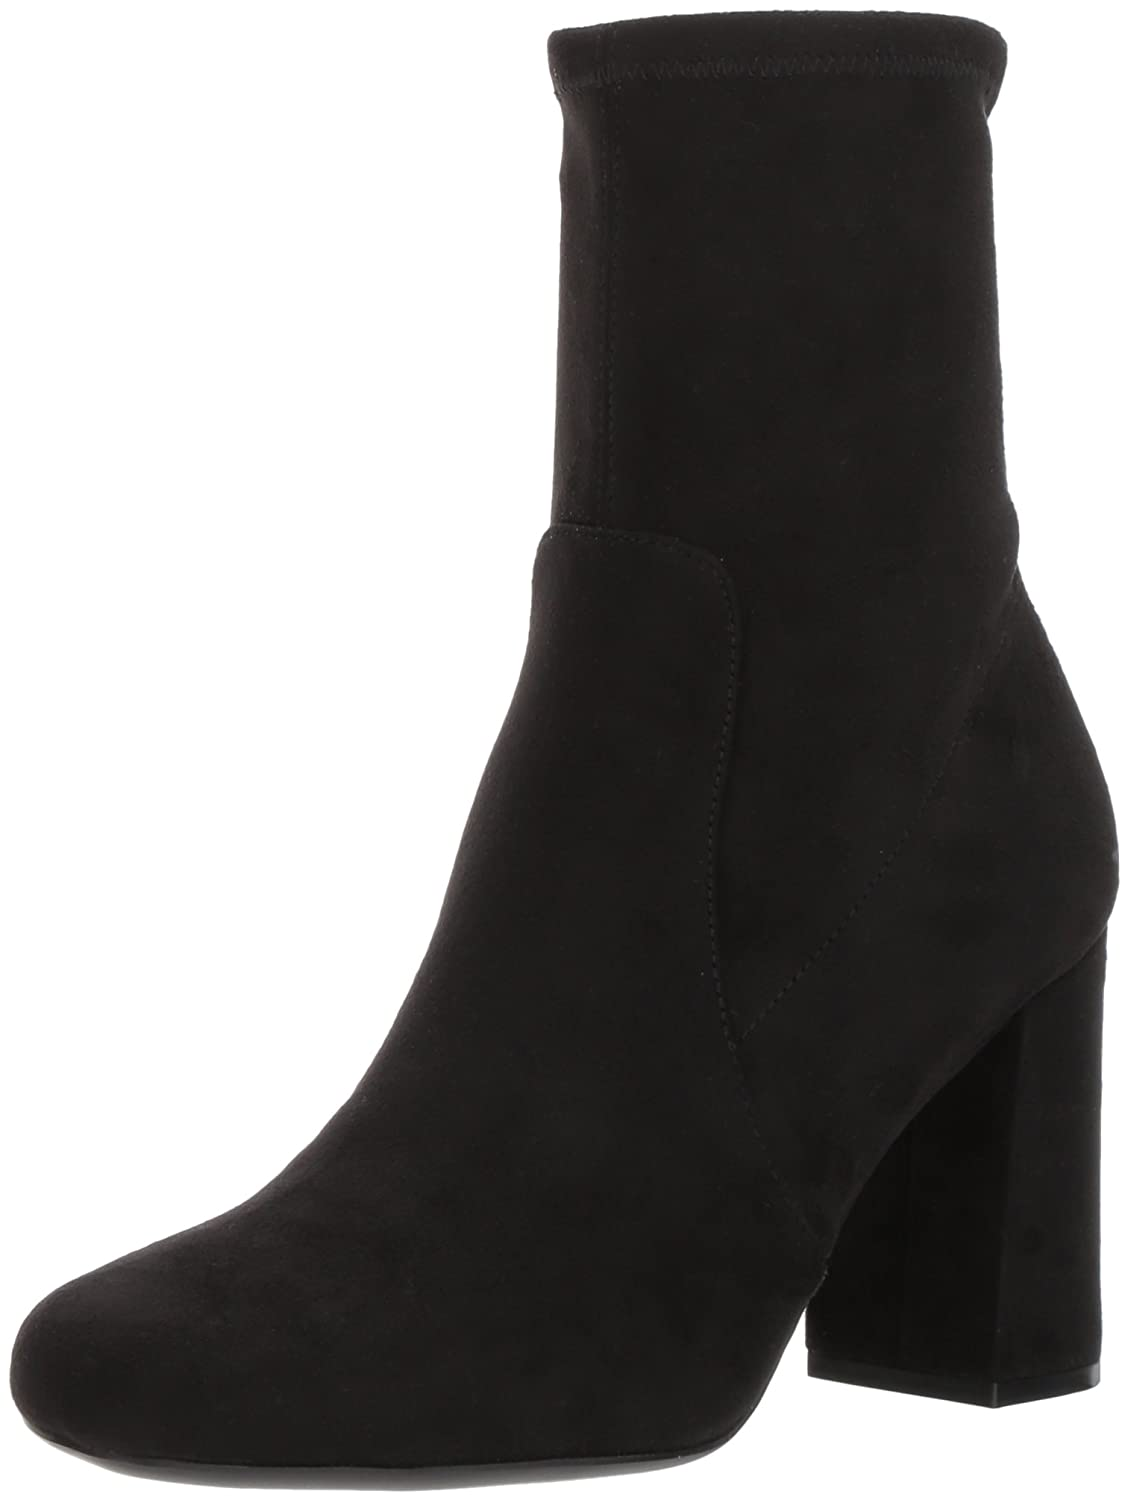 Naturalizer Women's Rebecca Boot B06W56MQJB 11 W US|Black